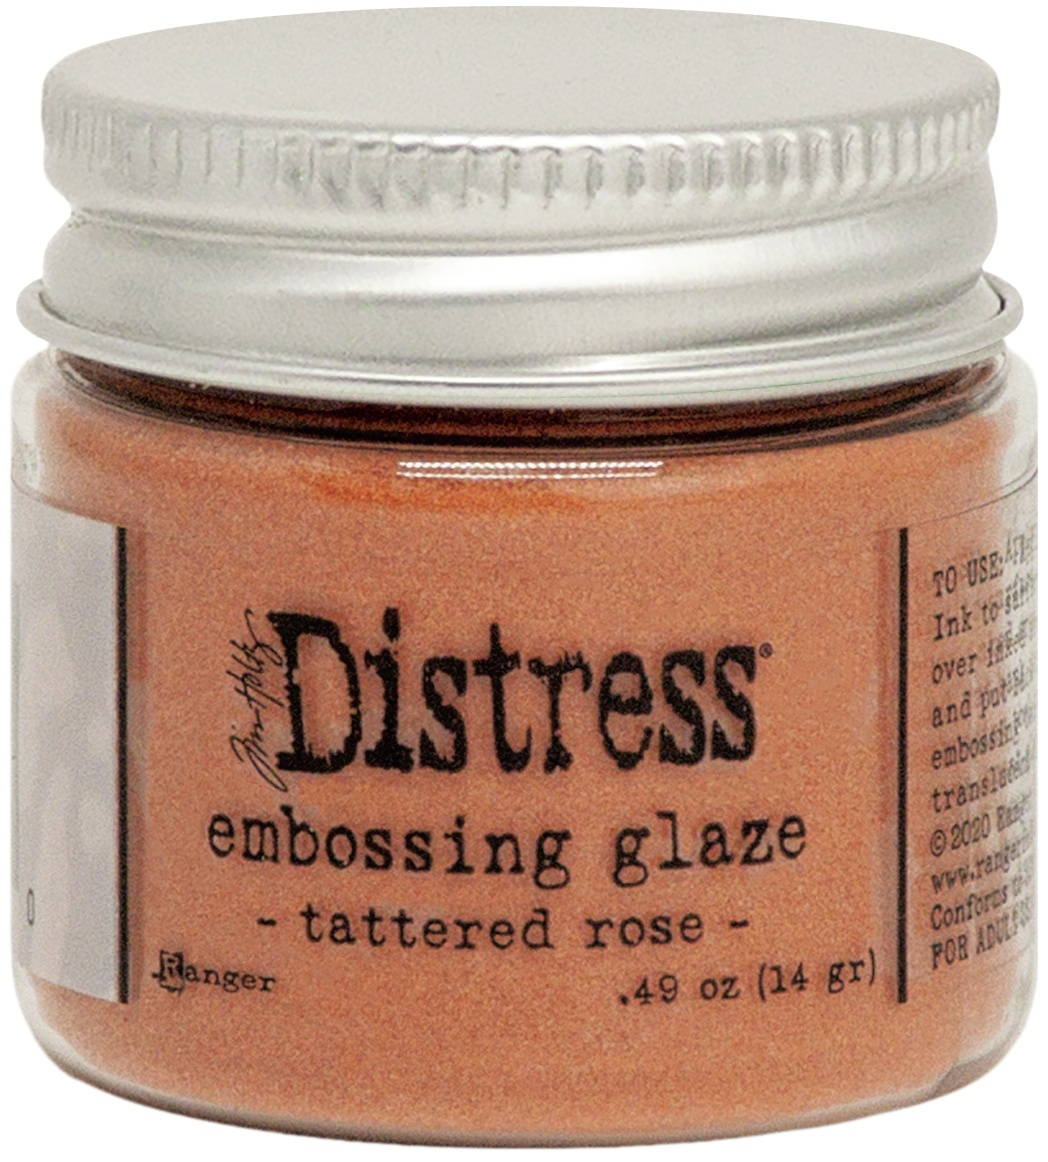 Tim Holtz Distress Embossing Glaze -Tattered Rose